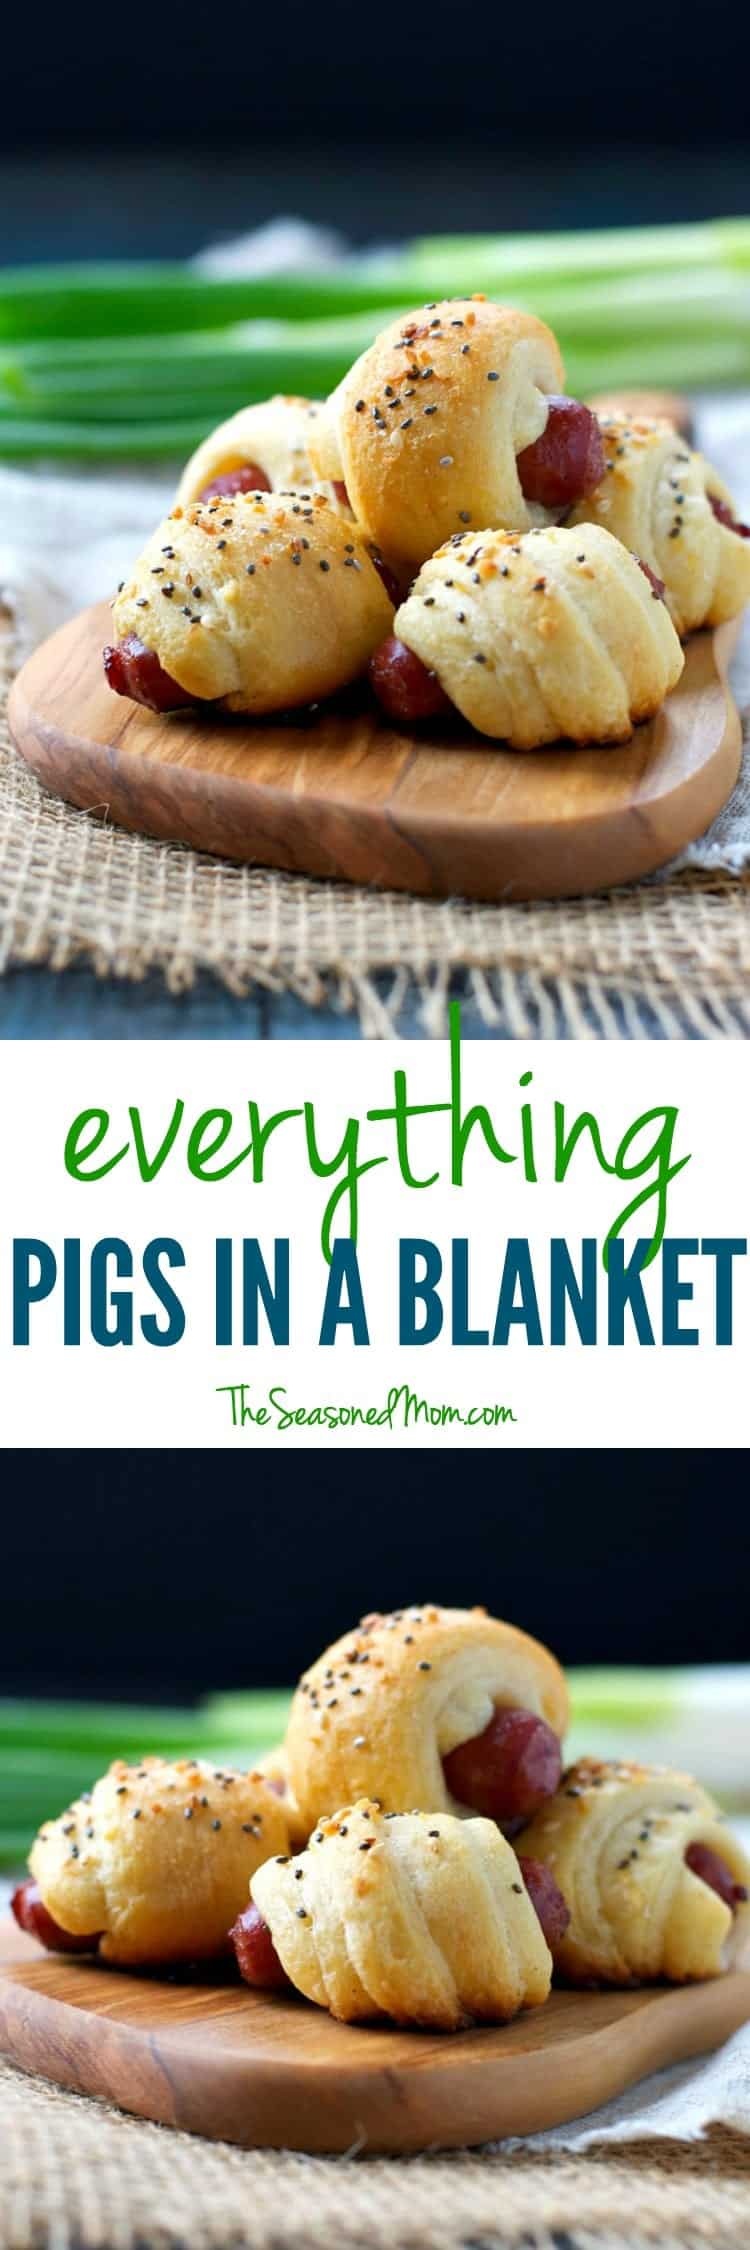 These Everything Pigs in a Blanket are perfect easy appetizers for your next party!